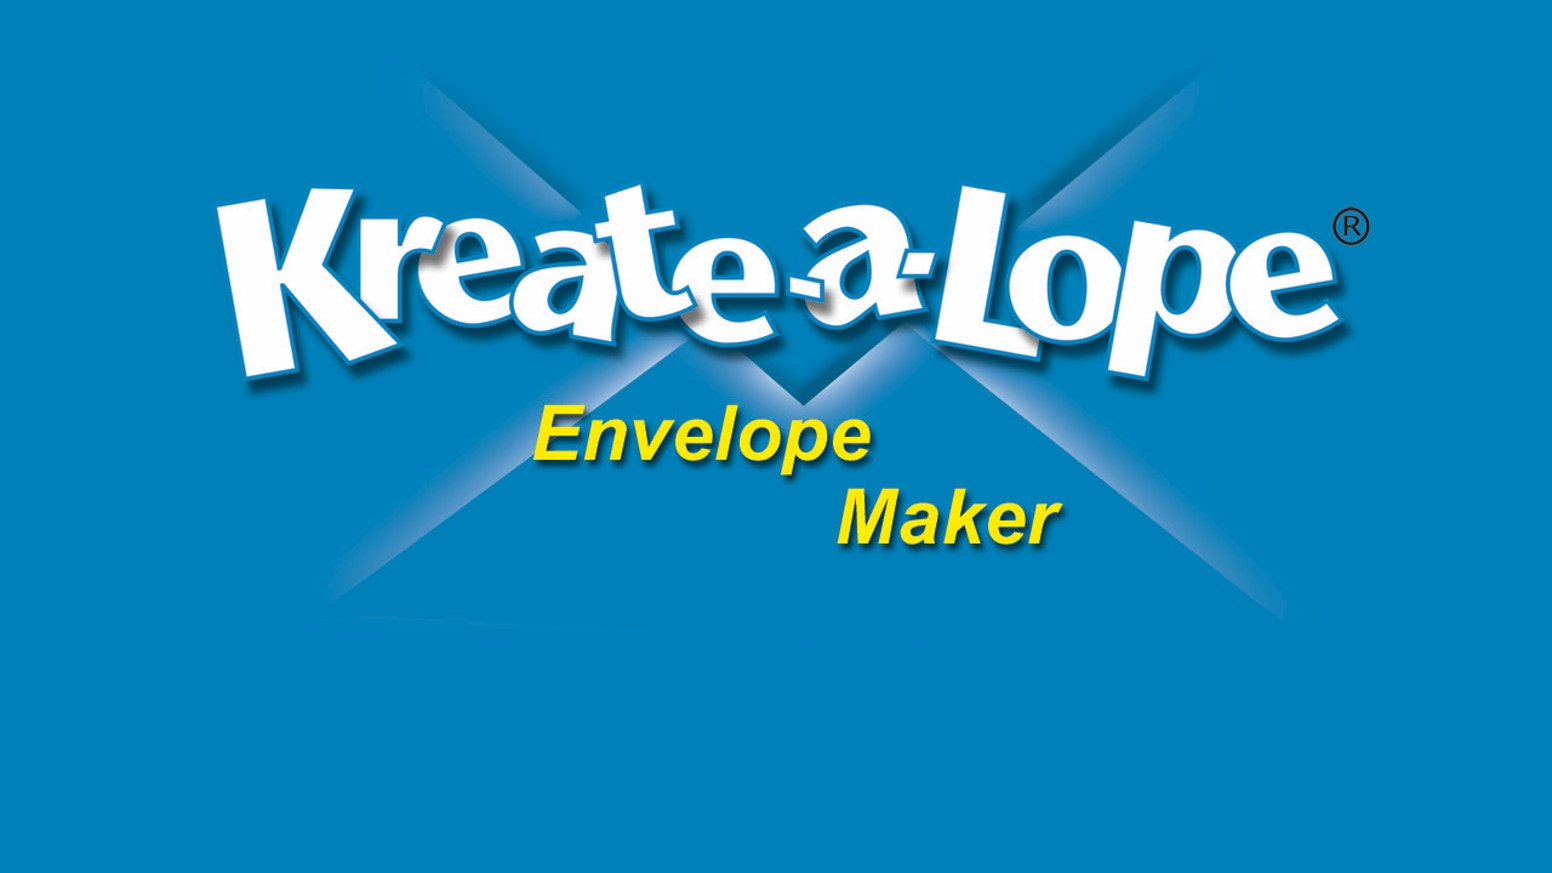 kreate a lope the fastest envelope maker on the planet by nick